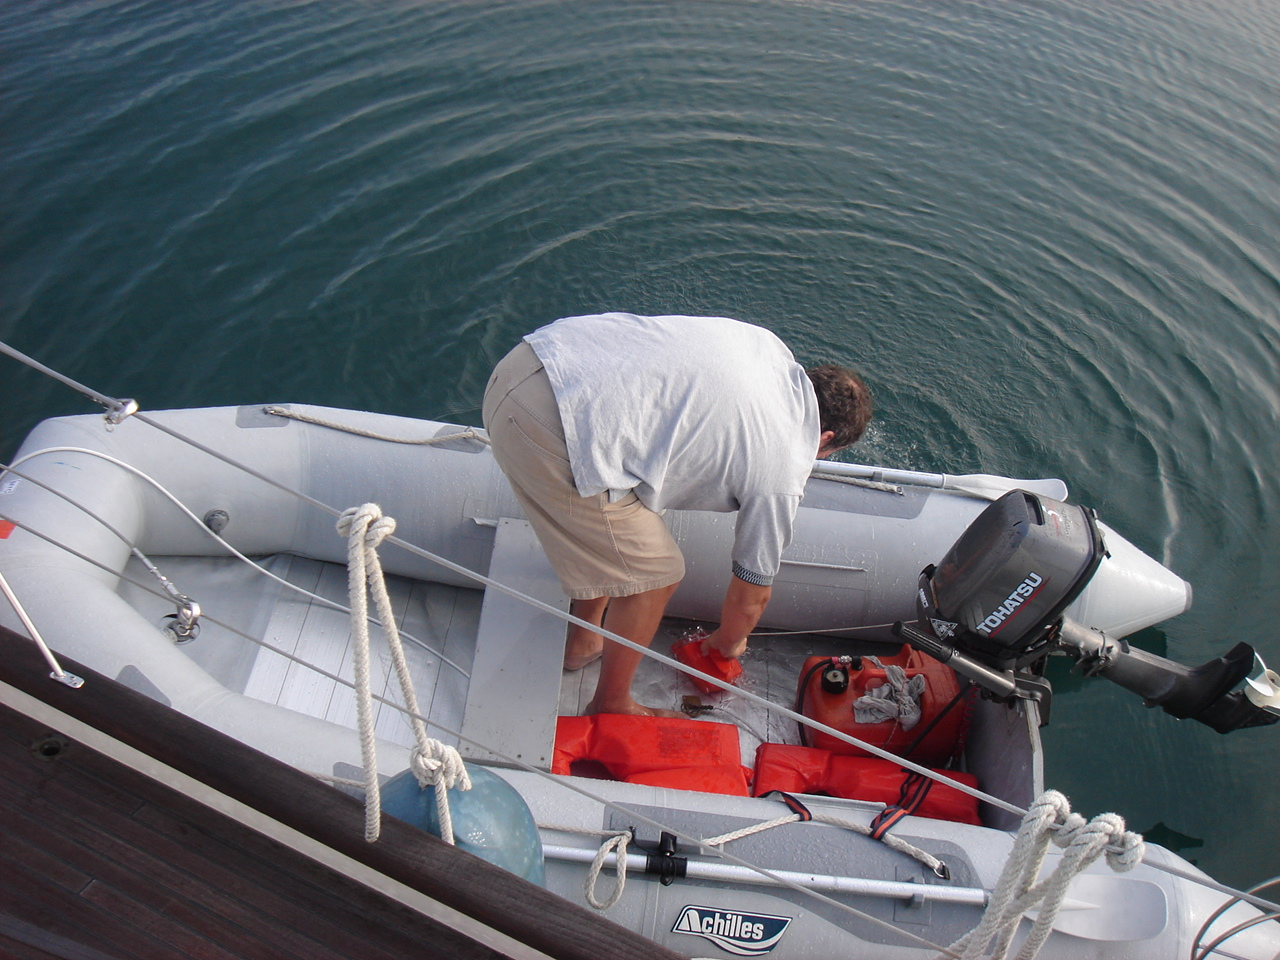 jens bailing out the dinghy